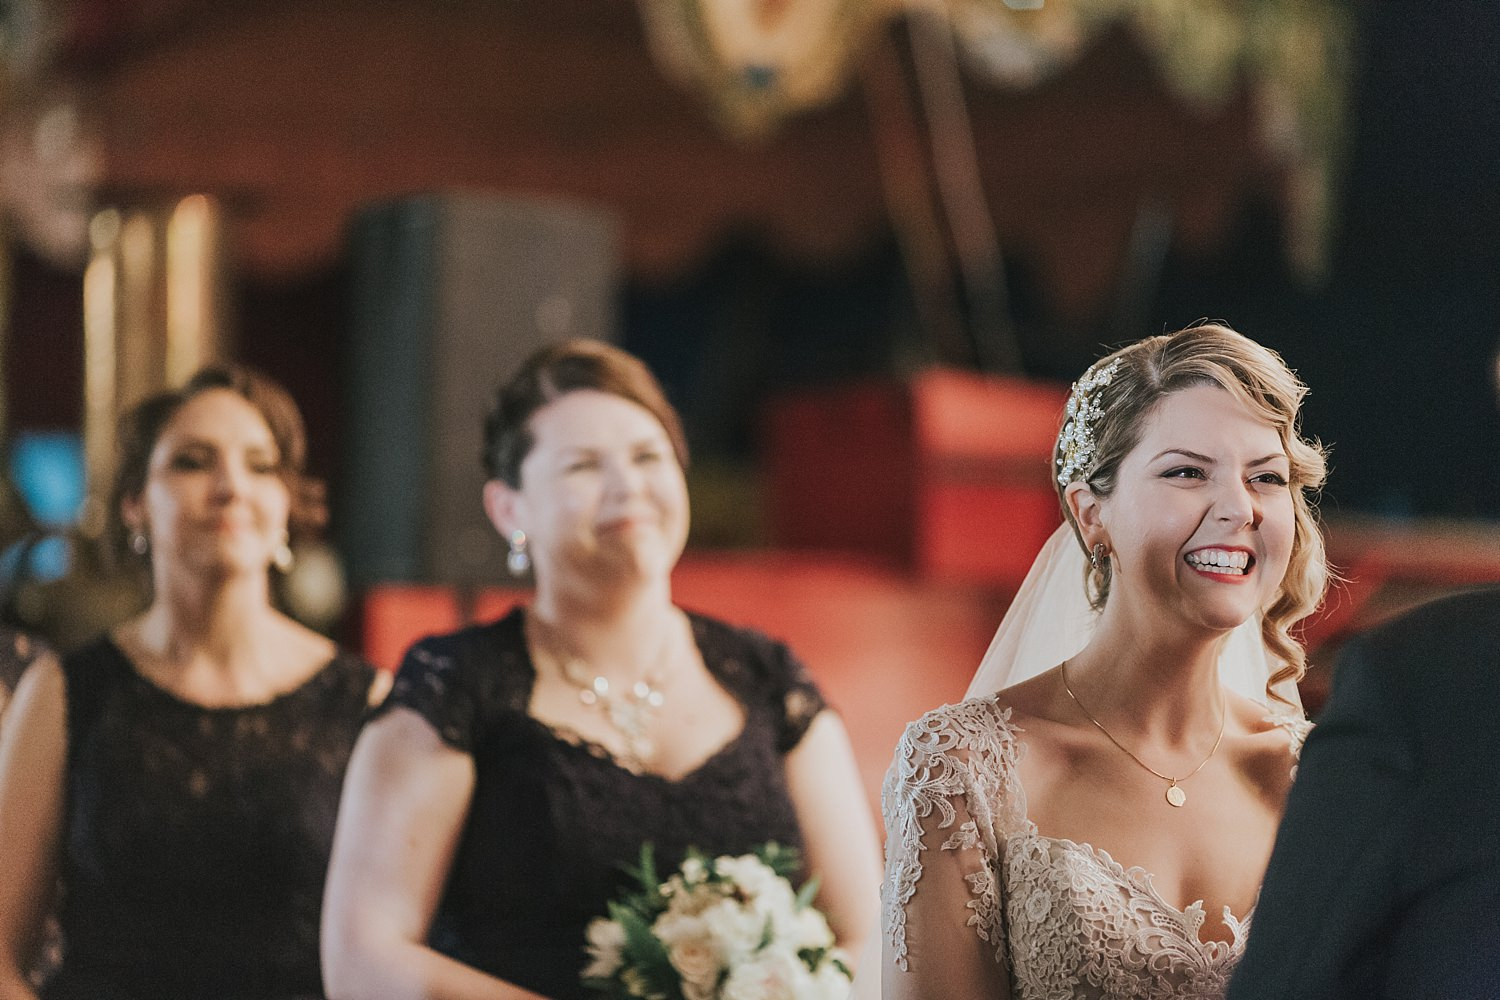 candid wedding photography at fairground follies